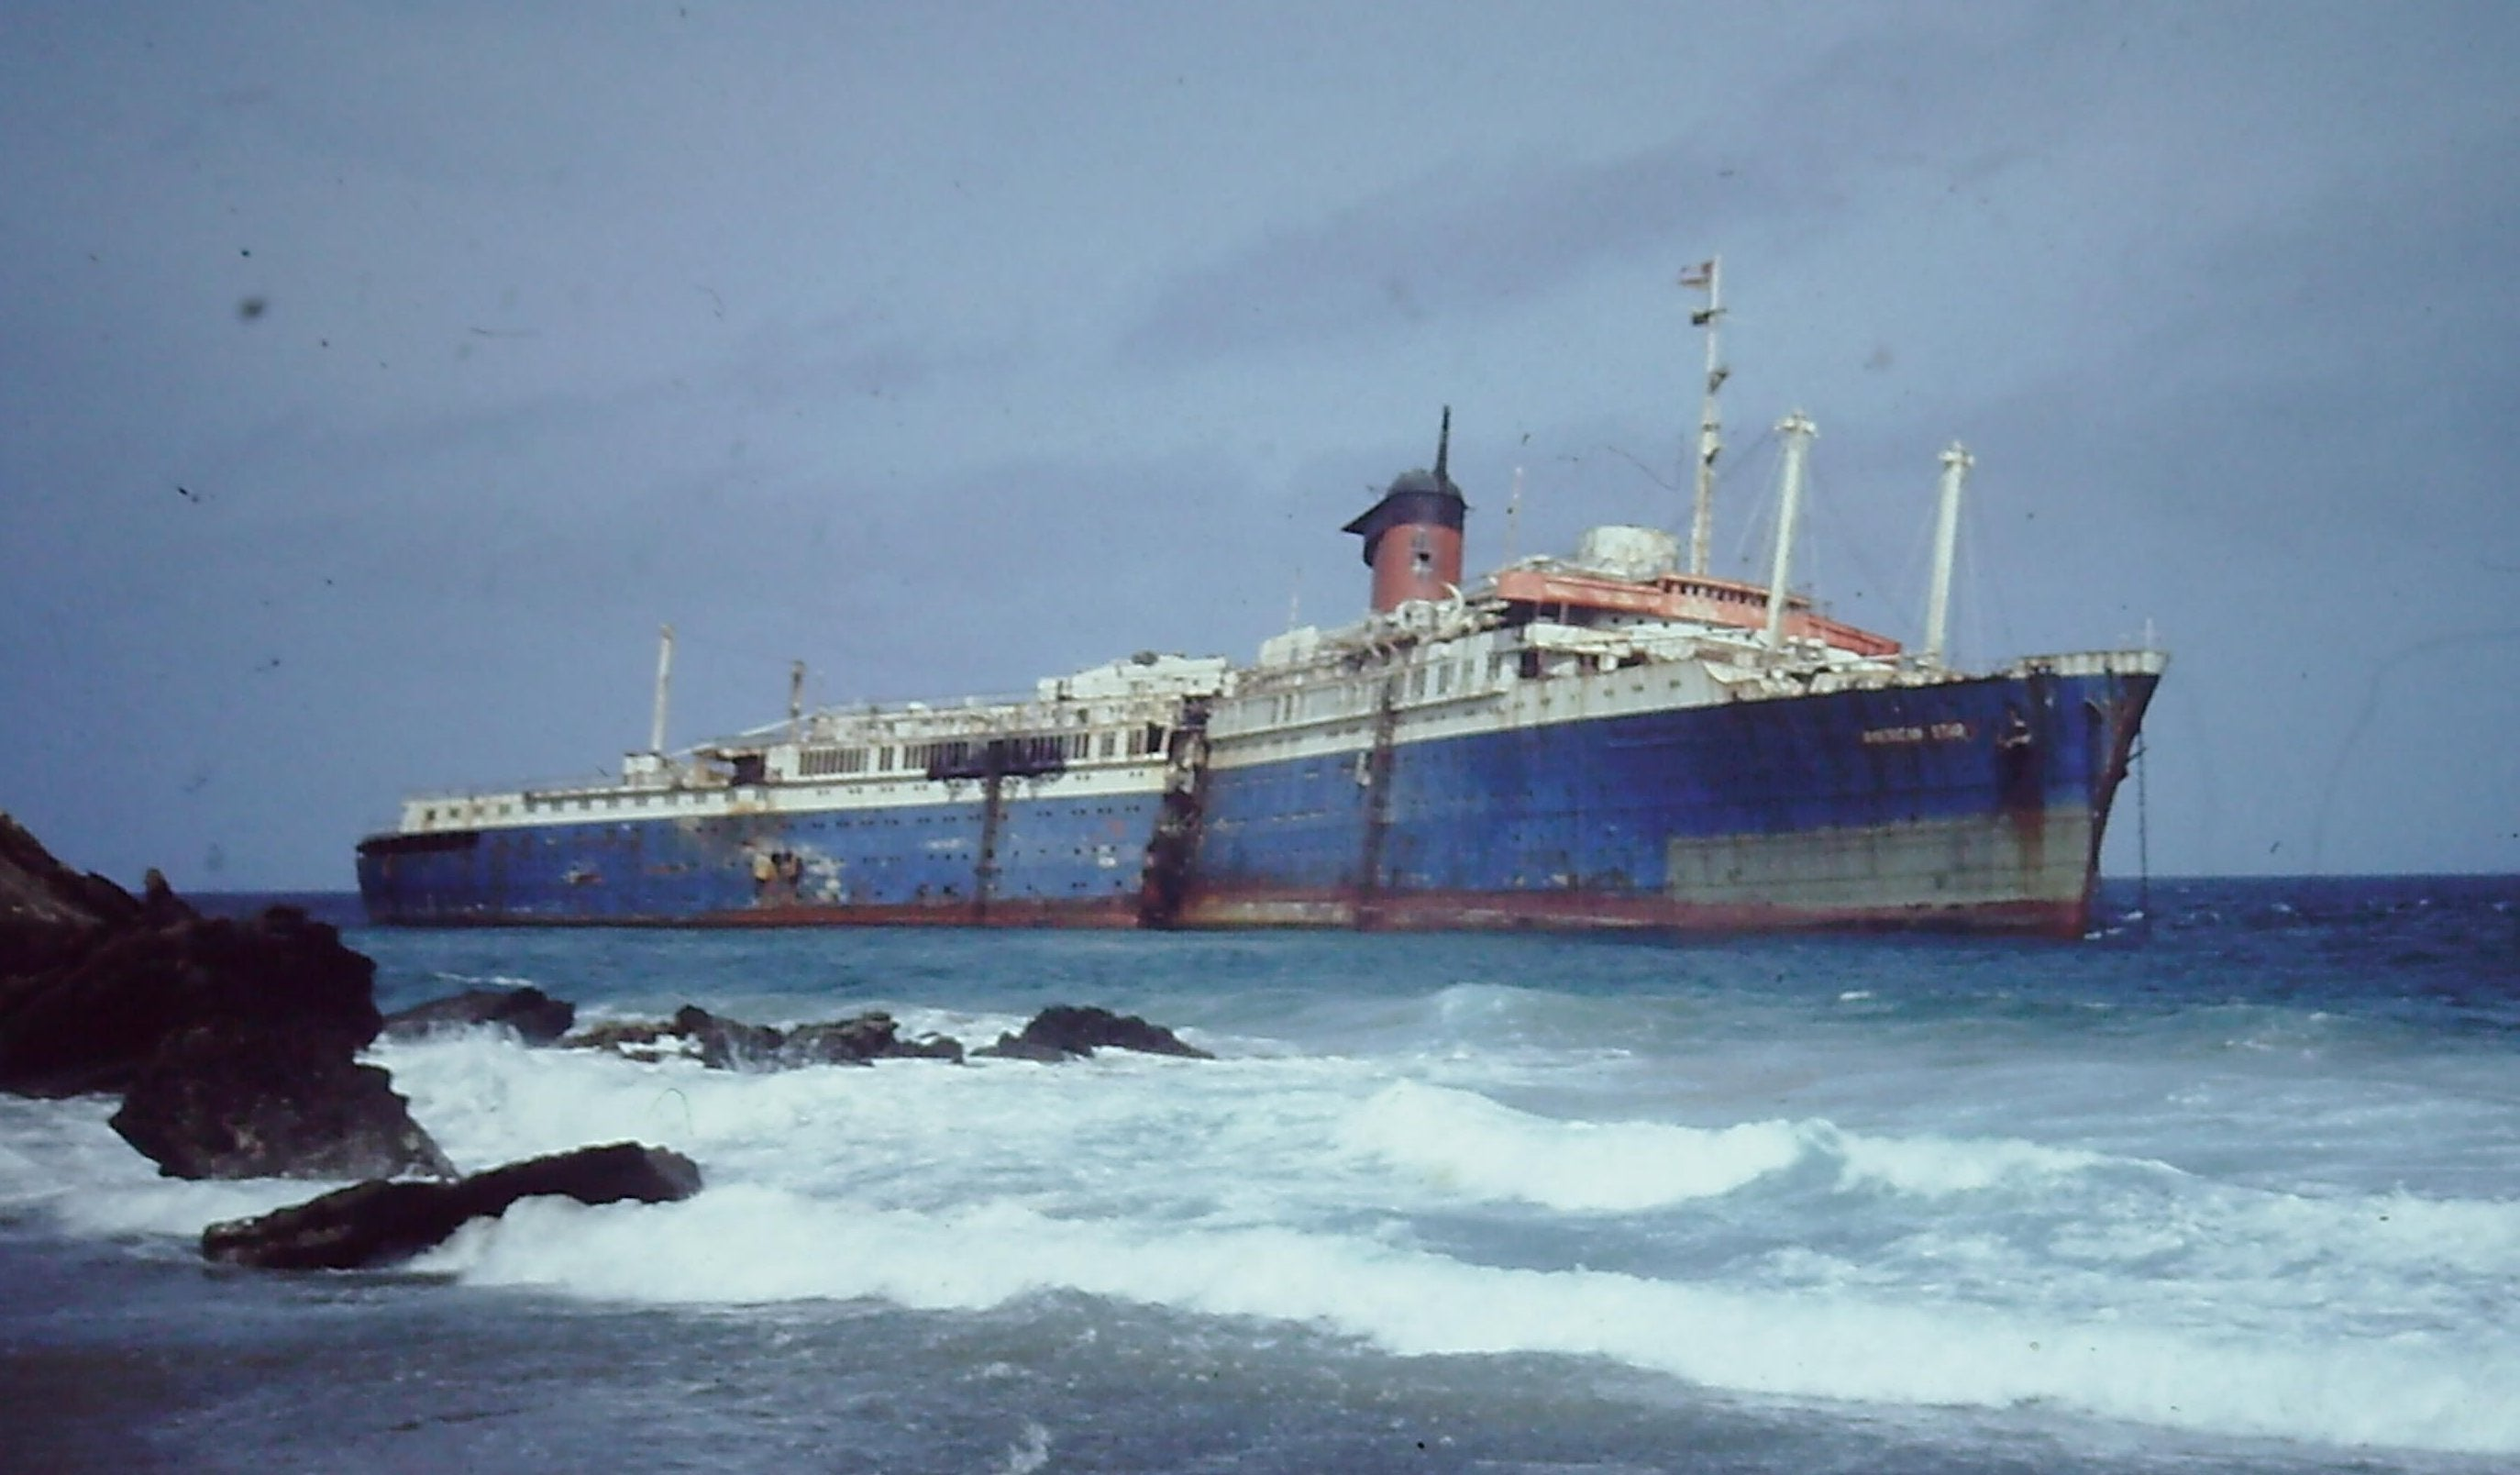 The Wreck Of The Ss America Lying Just Off The Coast Of